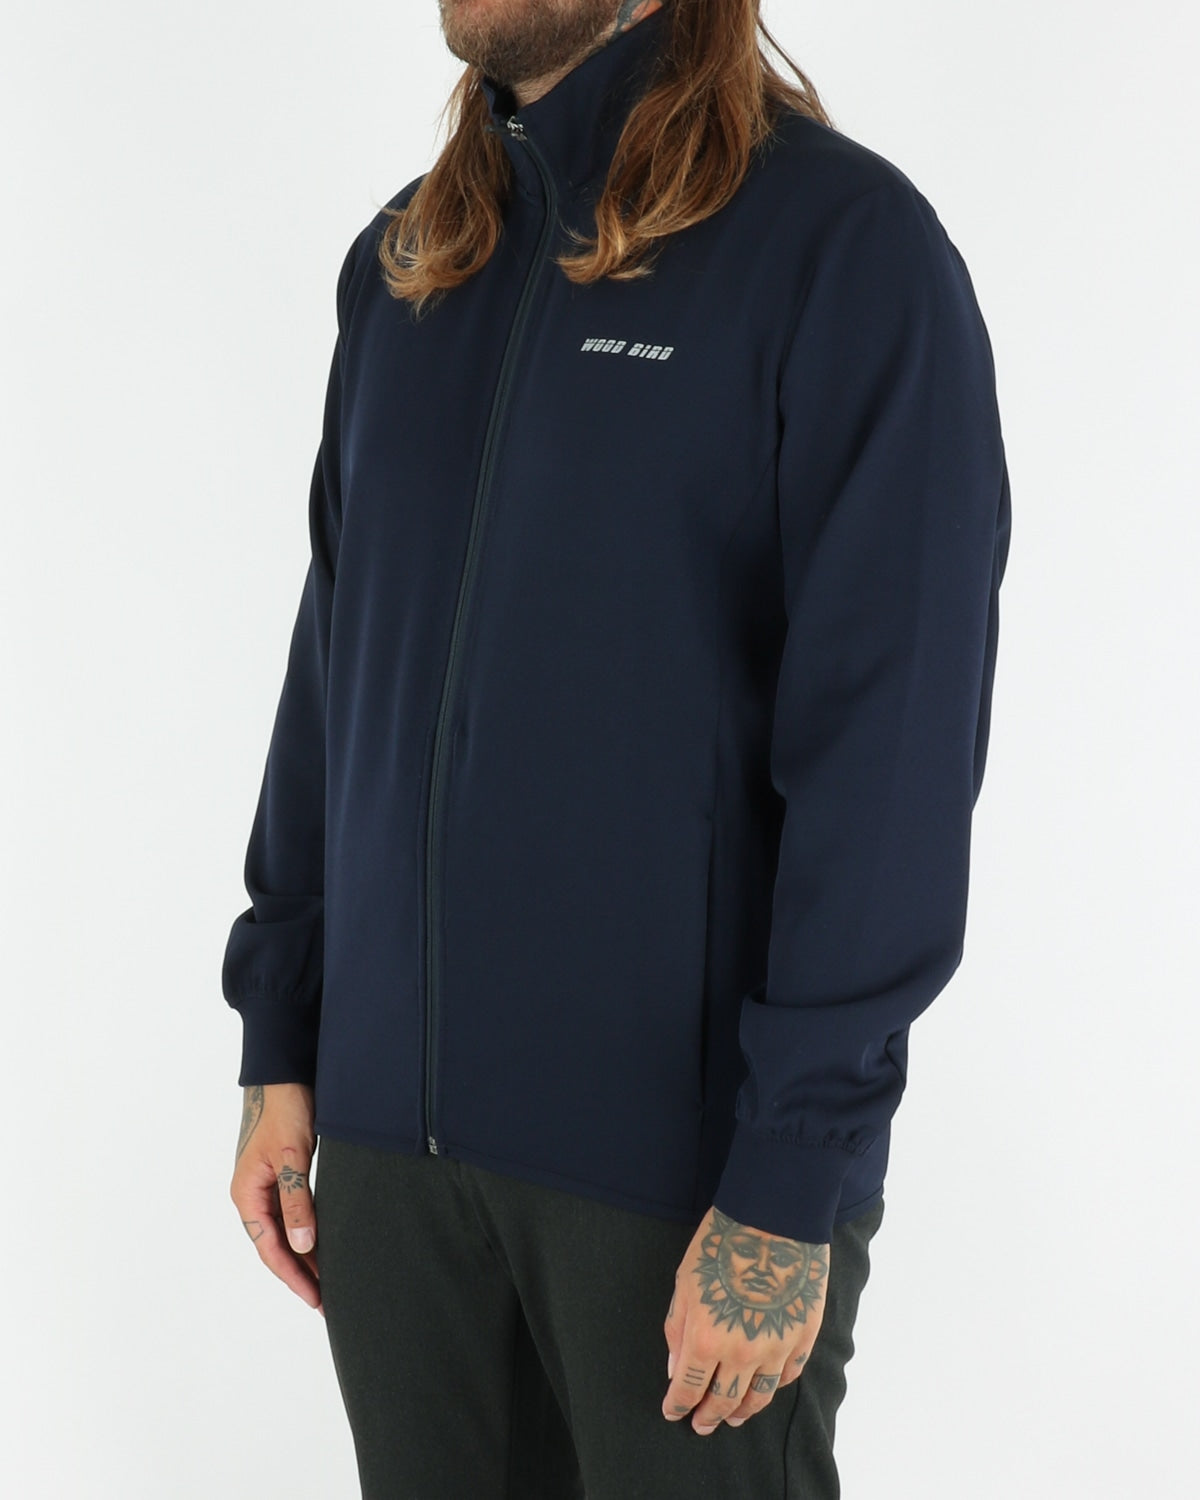 woodbird_josse tech zip_navy_view_2_3